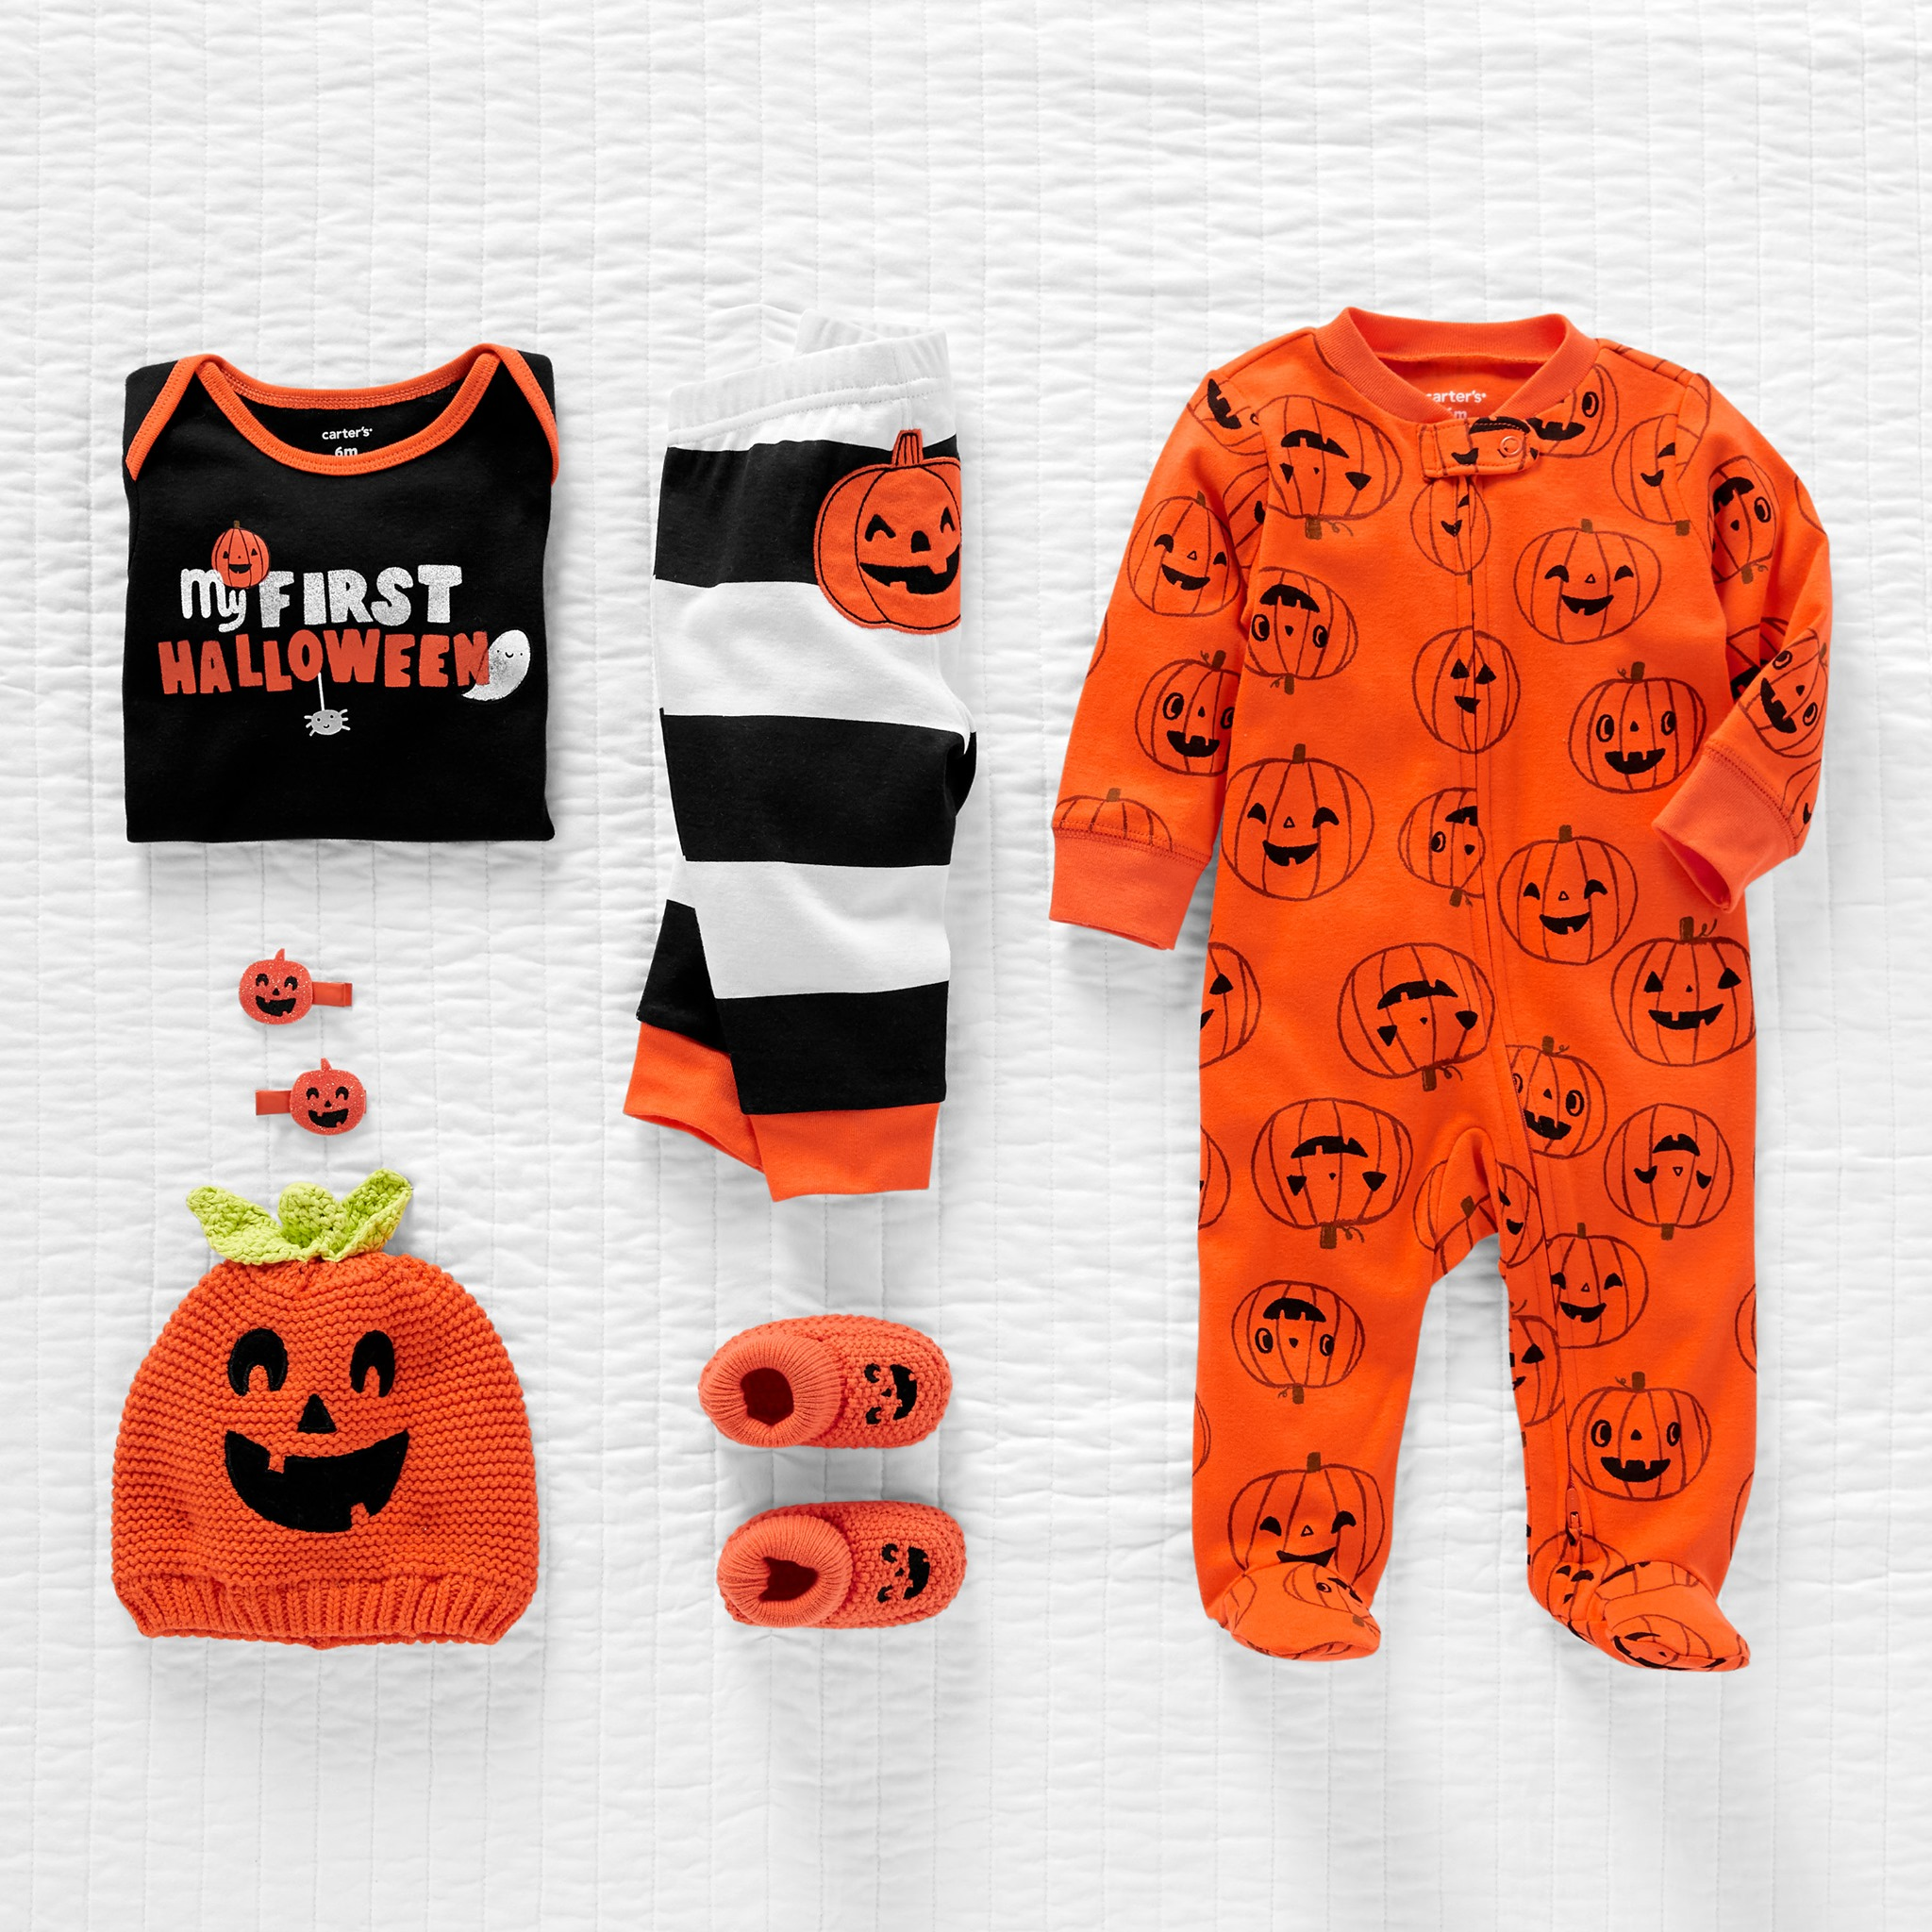 For Baby's First Halloween & More